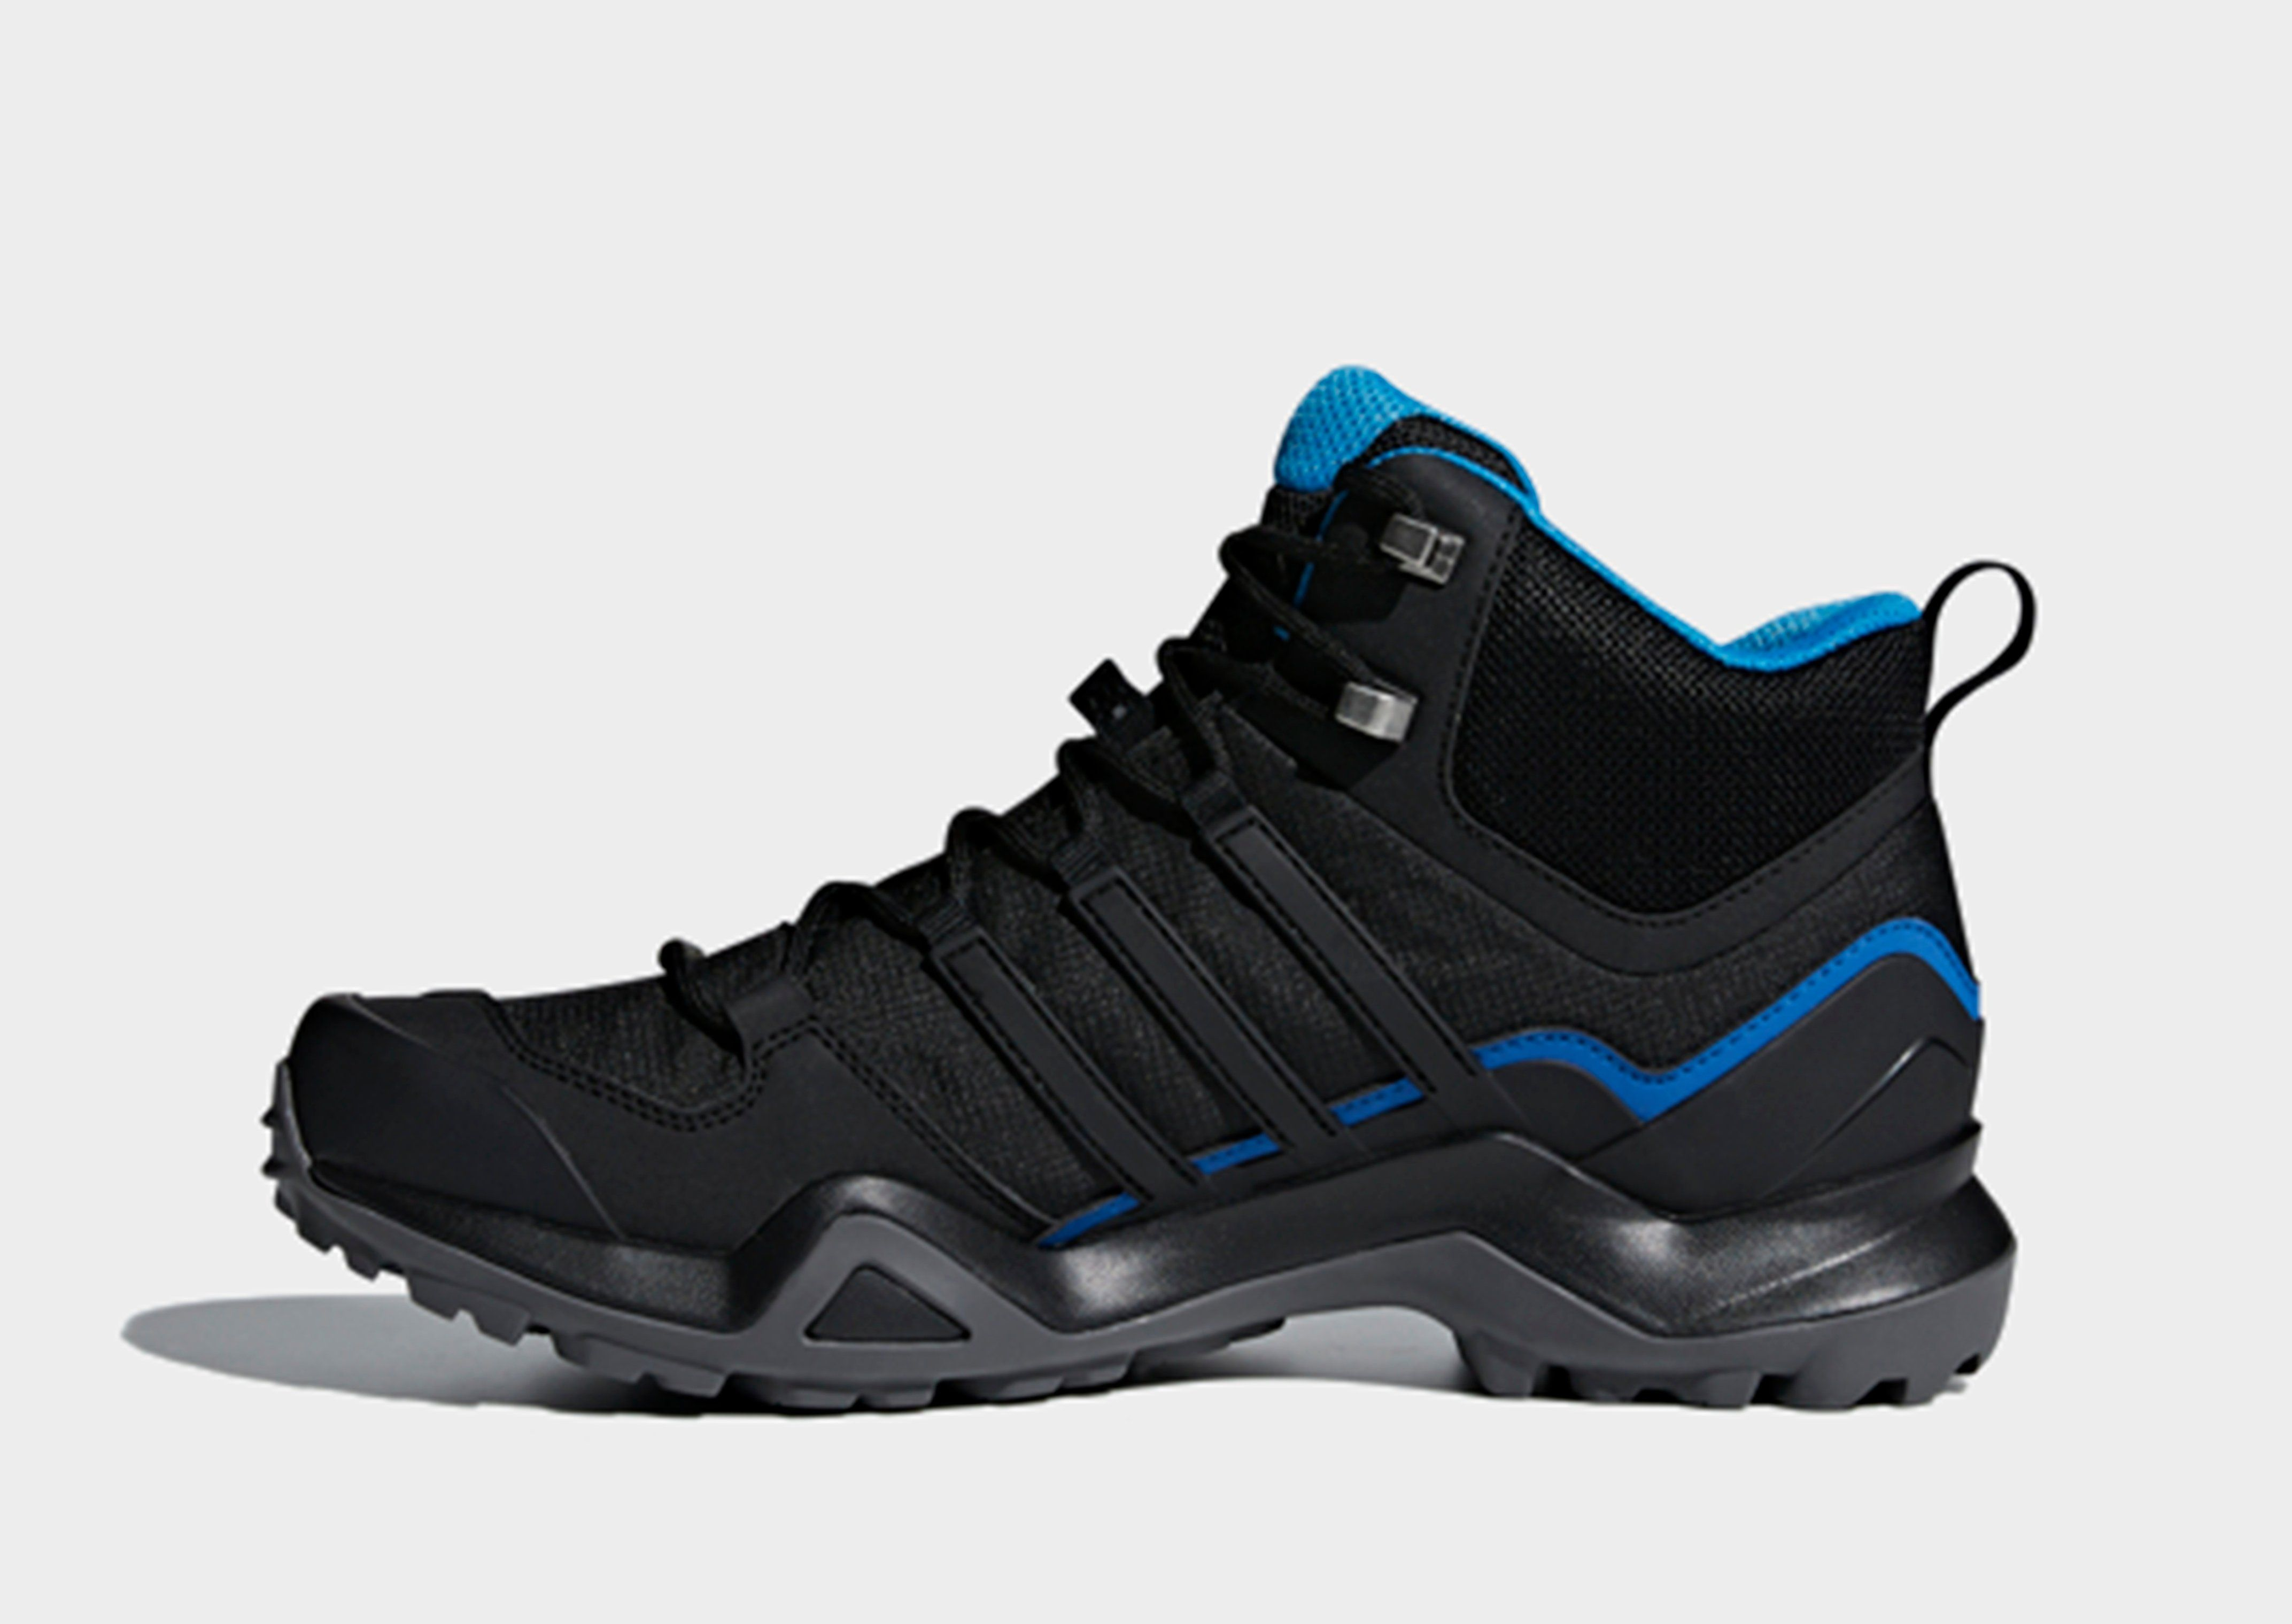 9257eaee618b0 ADIDAS Terrex Swift R2 Mid GTX Shoes